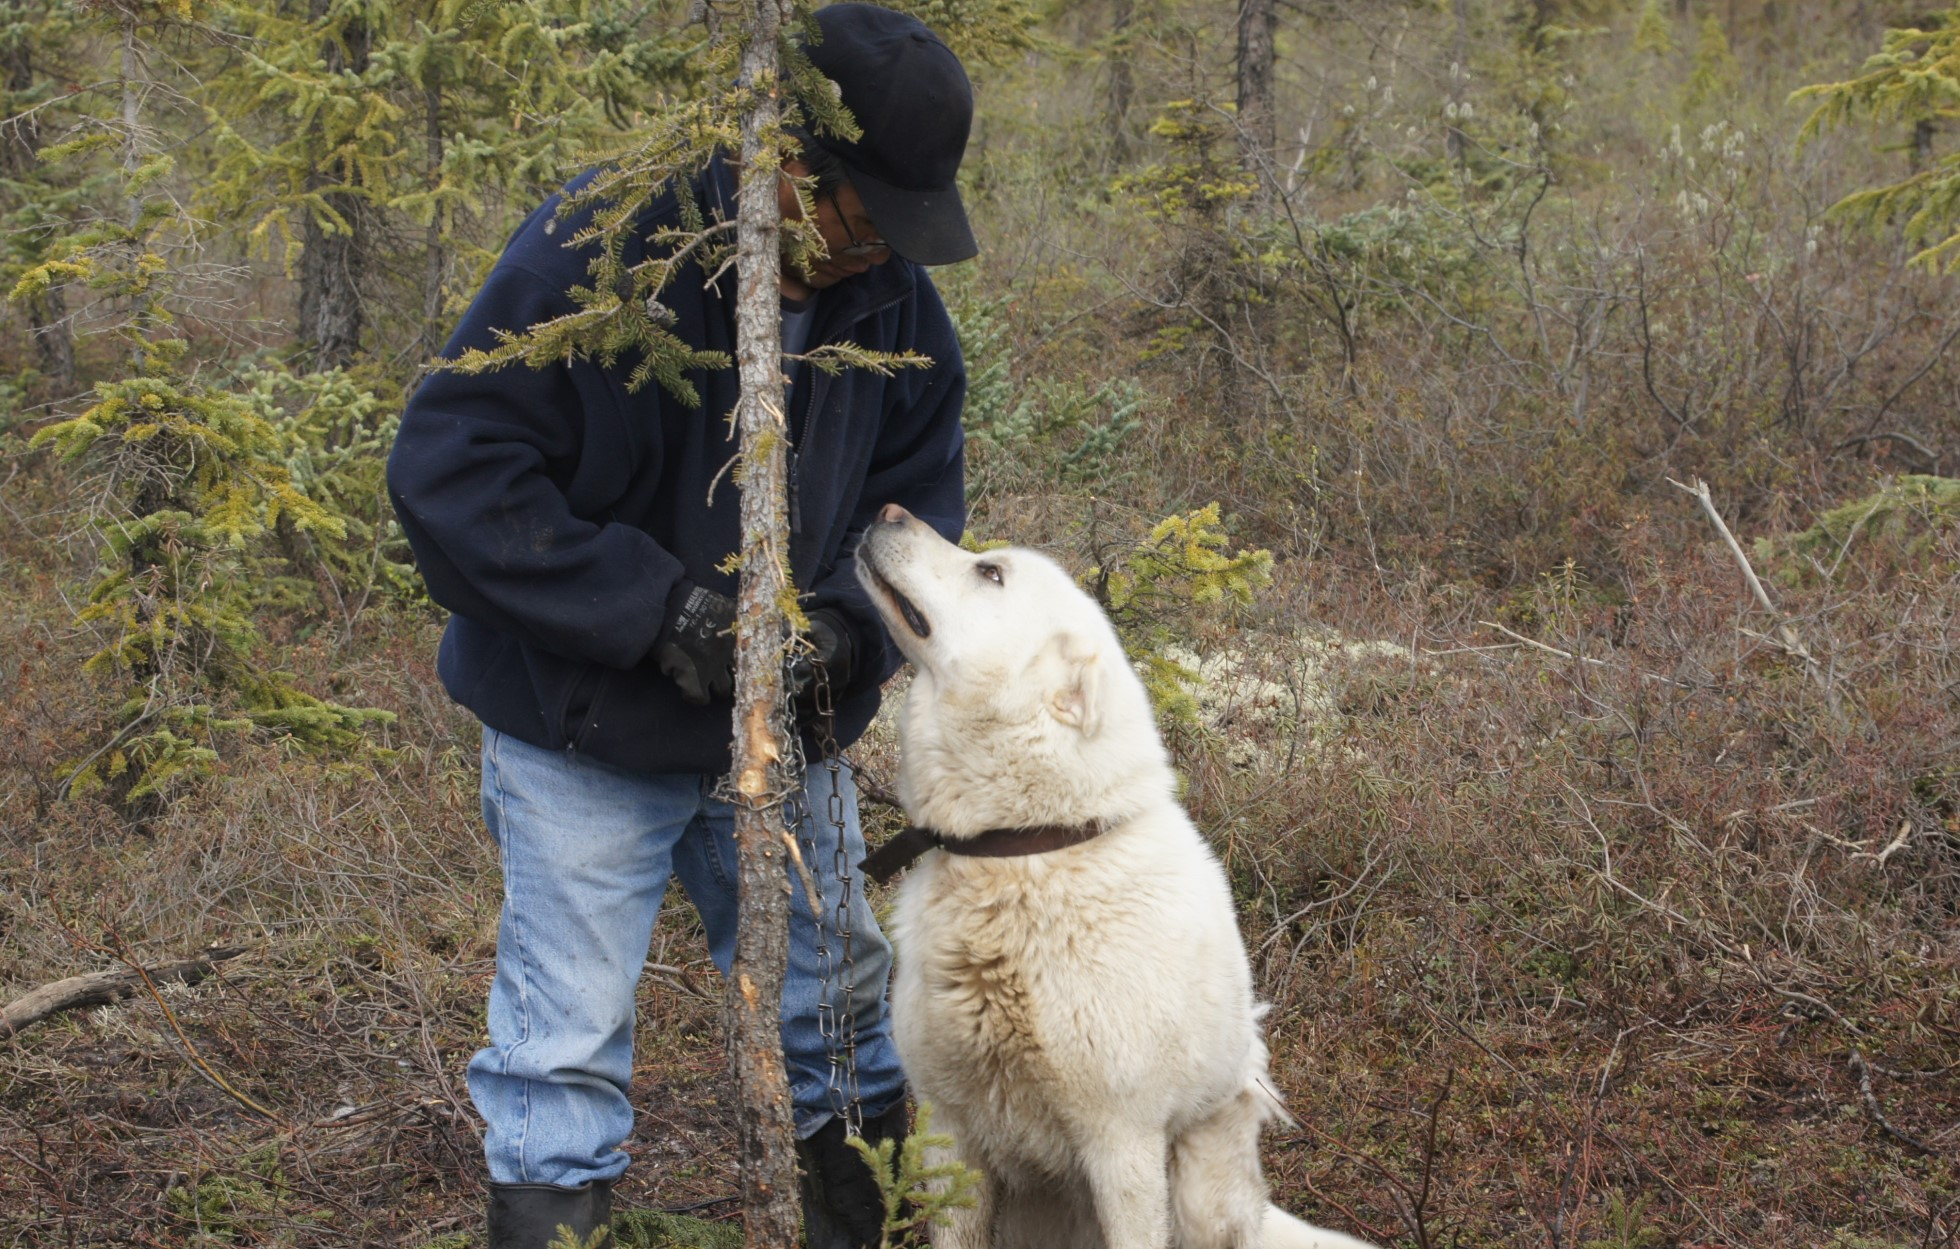 A man stands in a wooded area with a large dog who looks up at him.